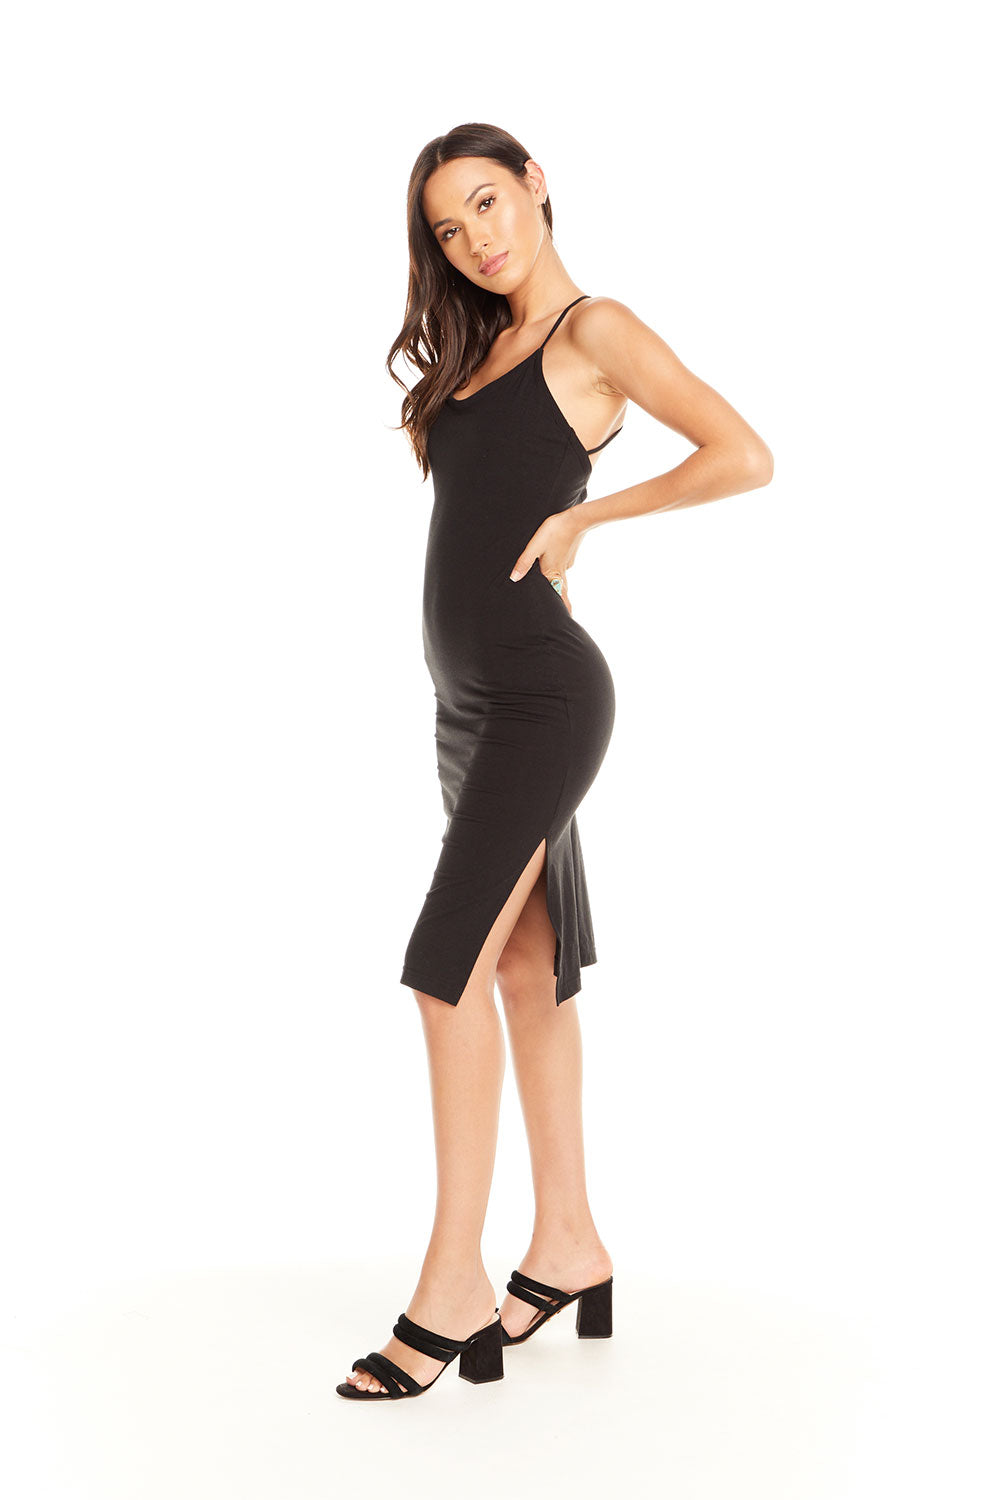 95b660e5cff Quadrablend Strappy Back Bodycon Cami Dress W  Slit - chaserbrand.com